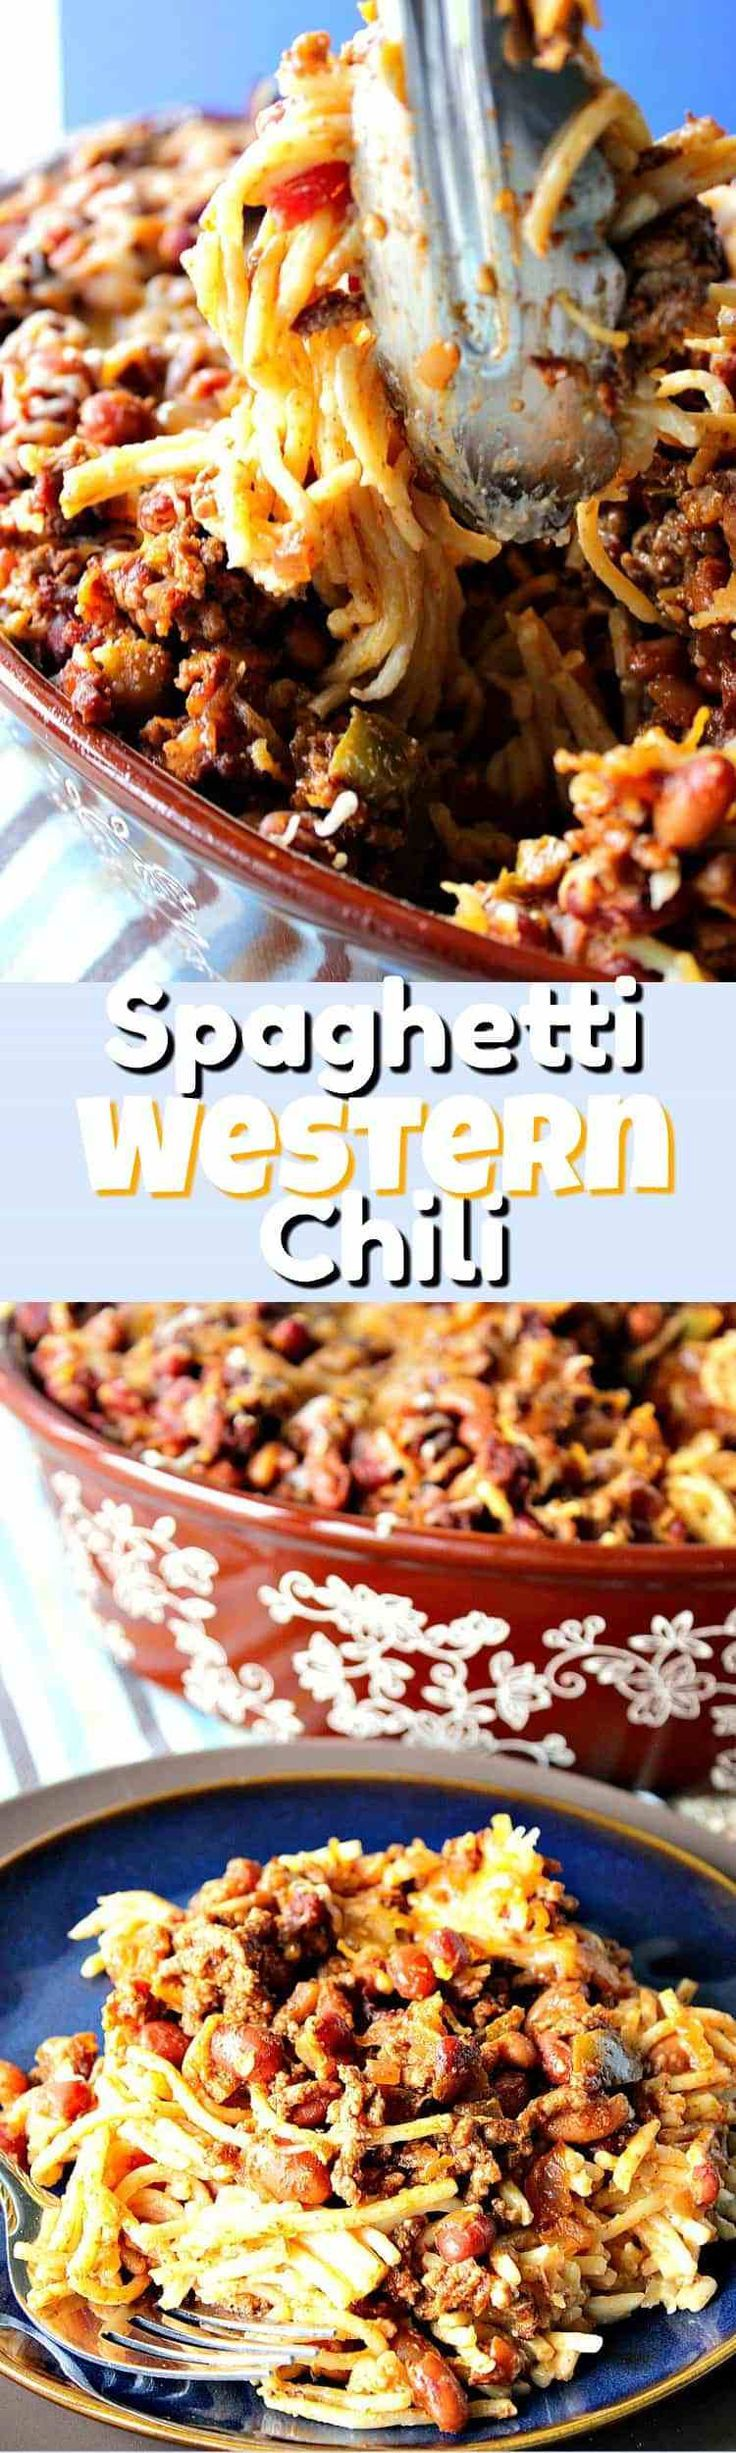 This Spaghetti Western Chili Casserole is quick to make (30 minutes or less) and can be made in advance, which is always a plus during the busy holiday season. - Kudos Kitchen by Renee